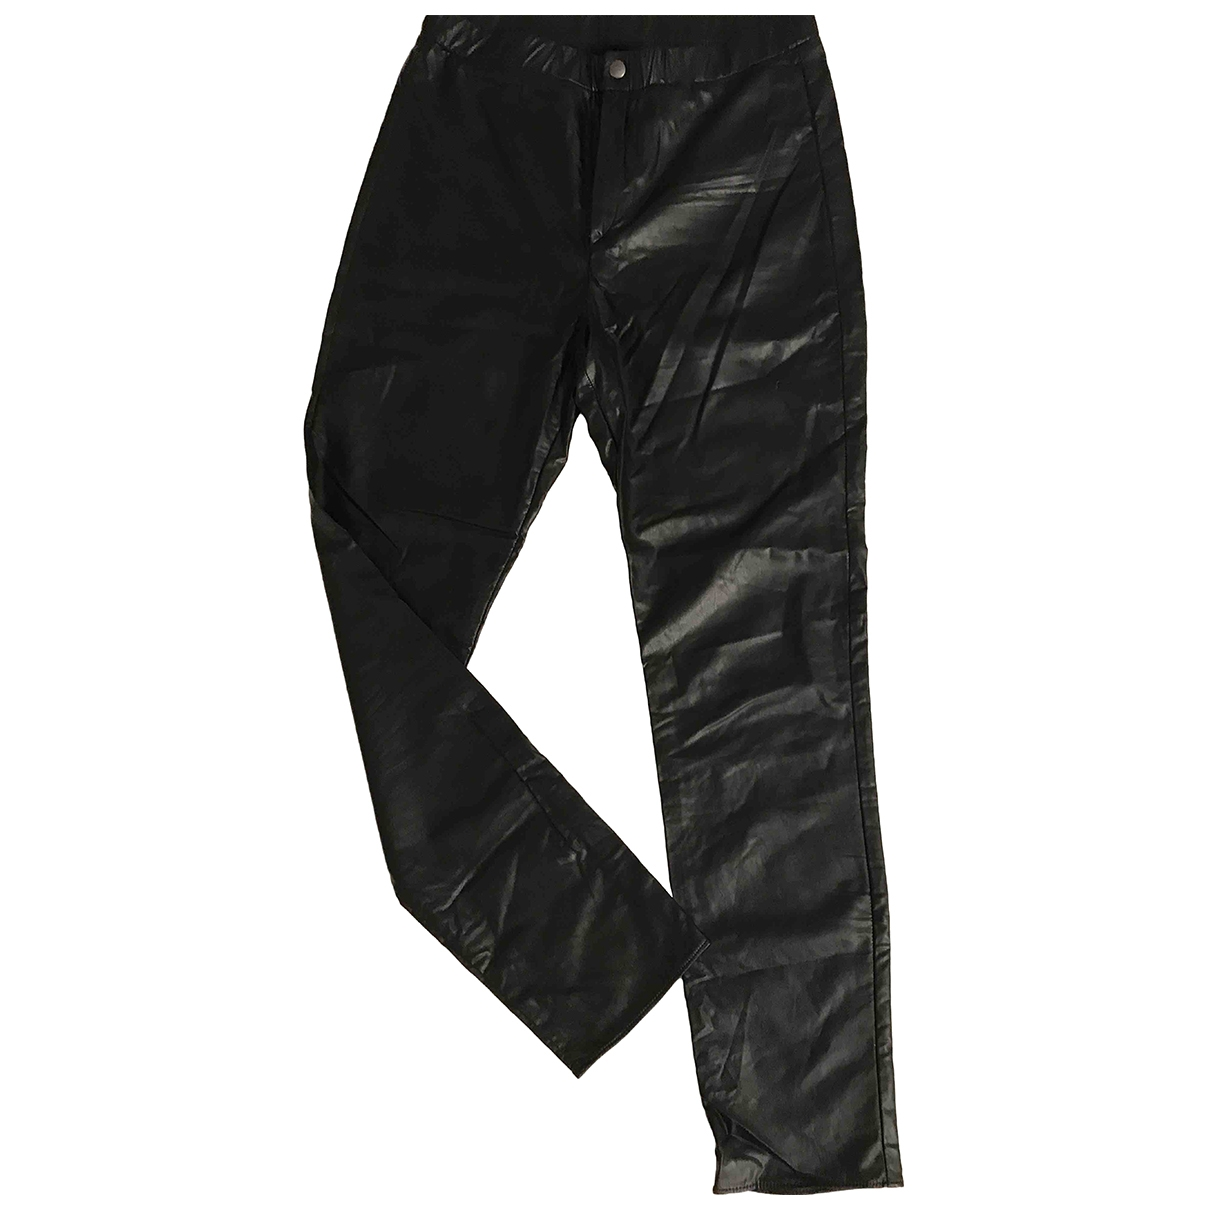 Isabel Marant Etoile \N Black Leather Trousers for Women 36 FR